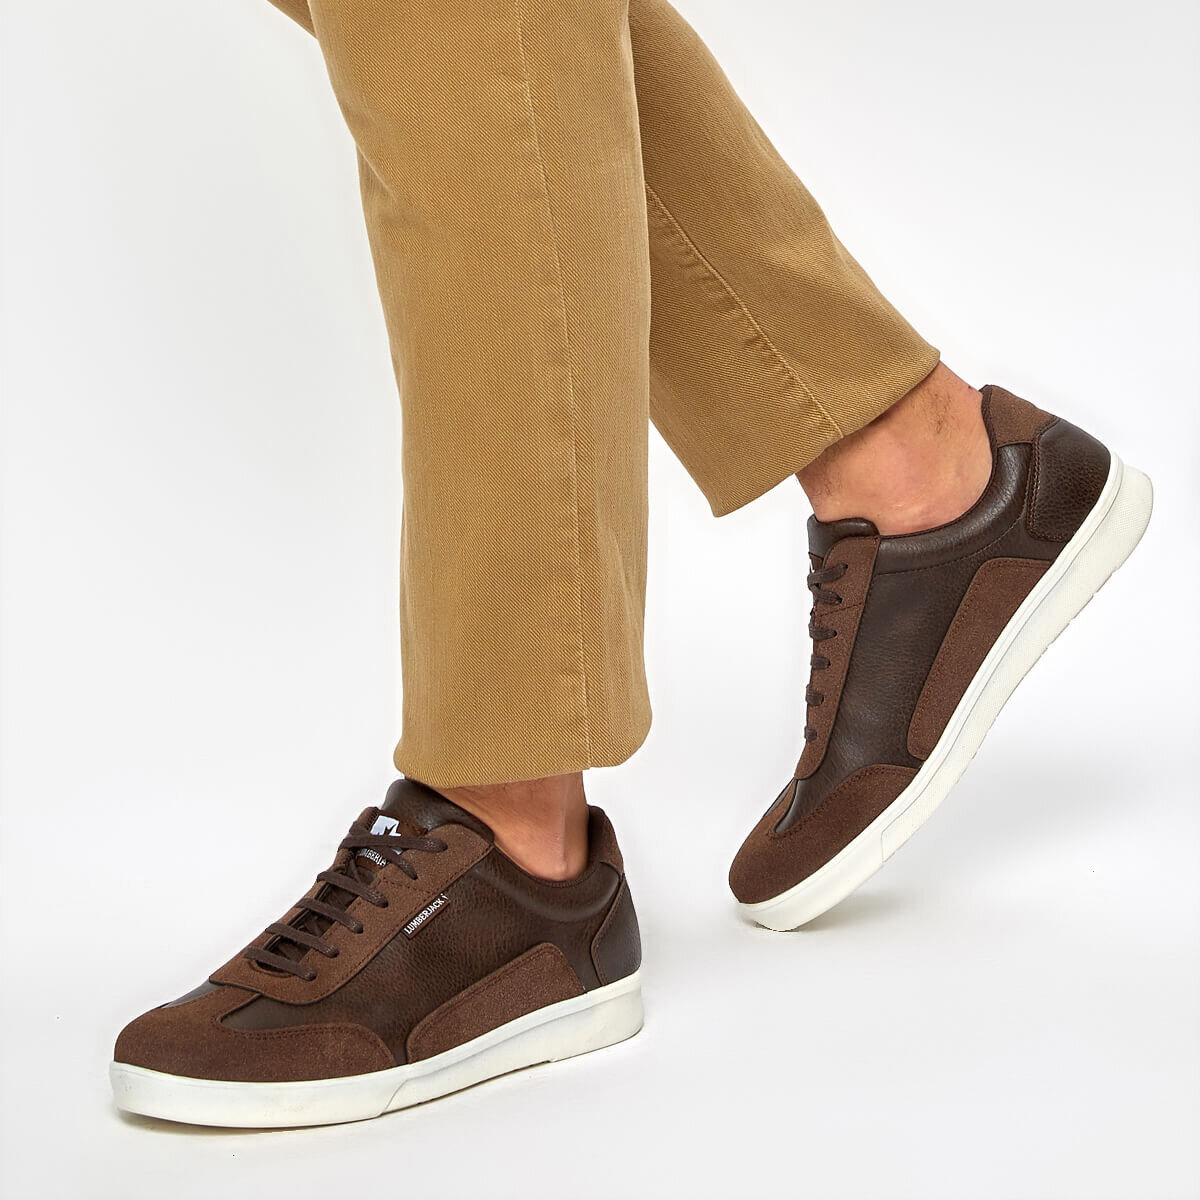 FLO RILEY 9PR Brown Men 'S Sneaker Shoes LUMBERJACK